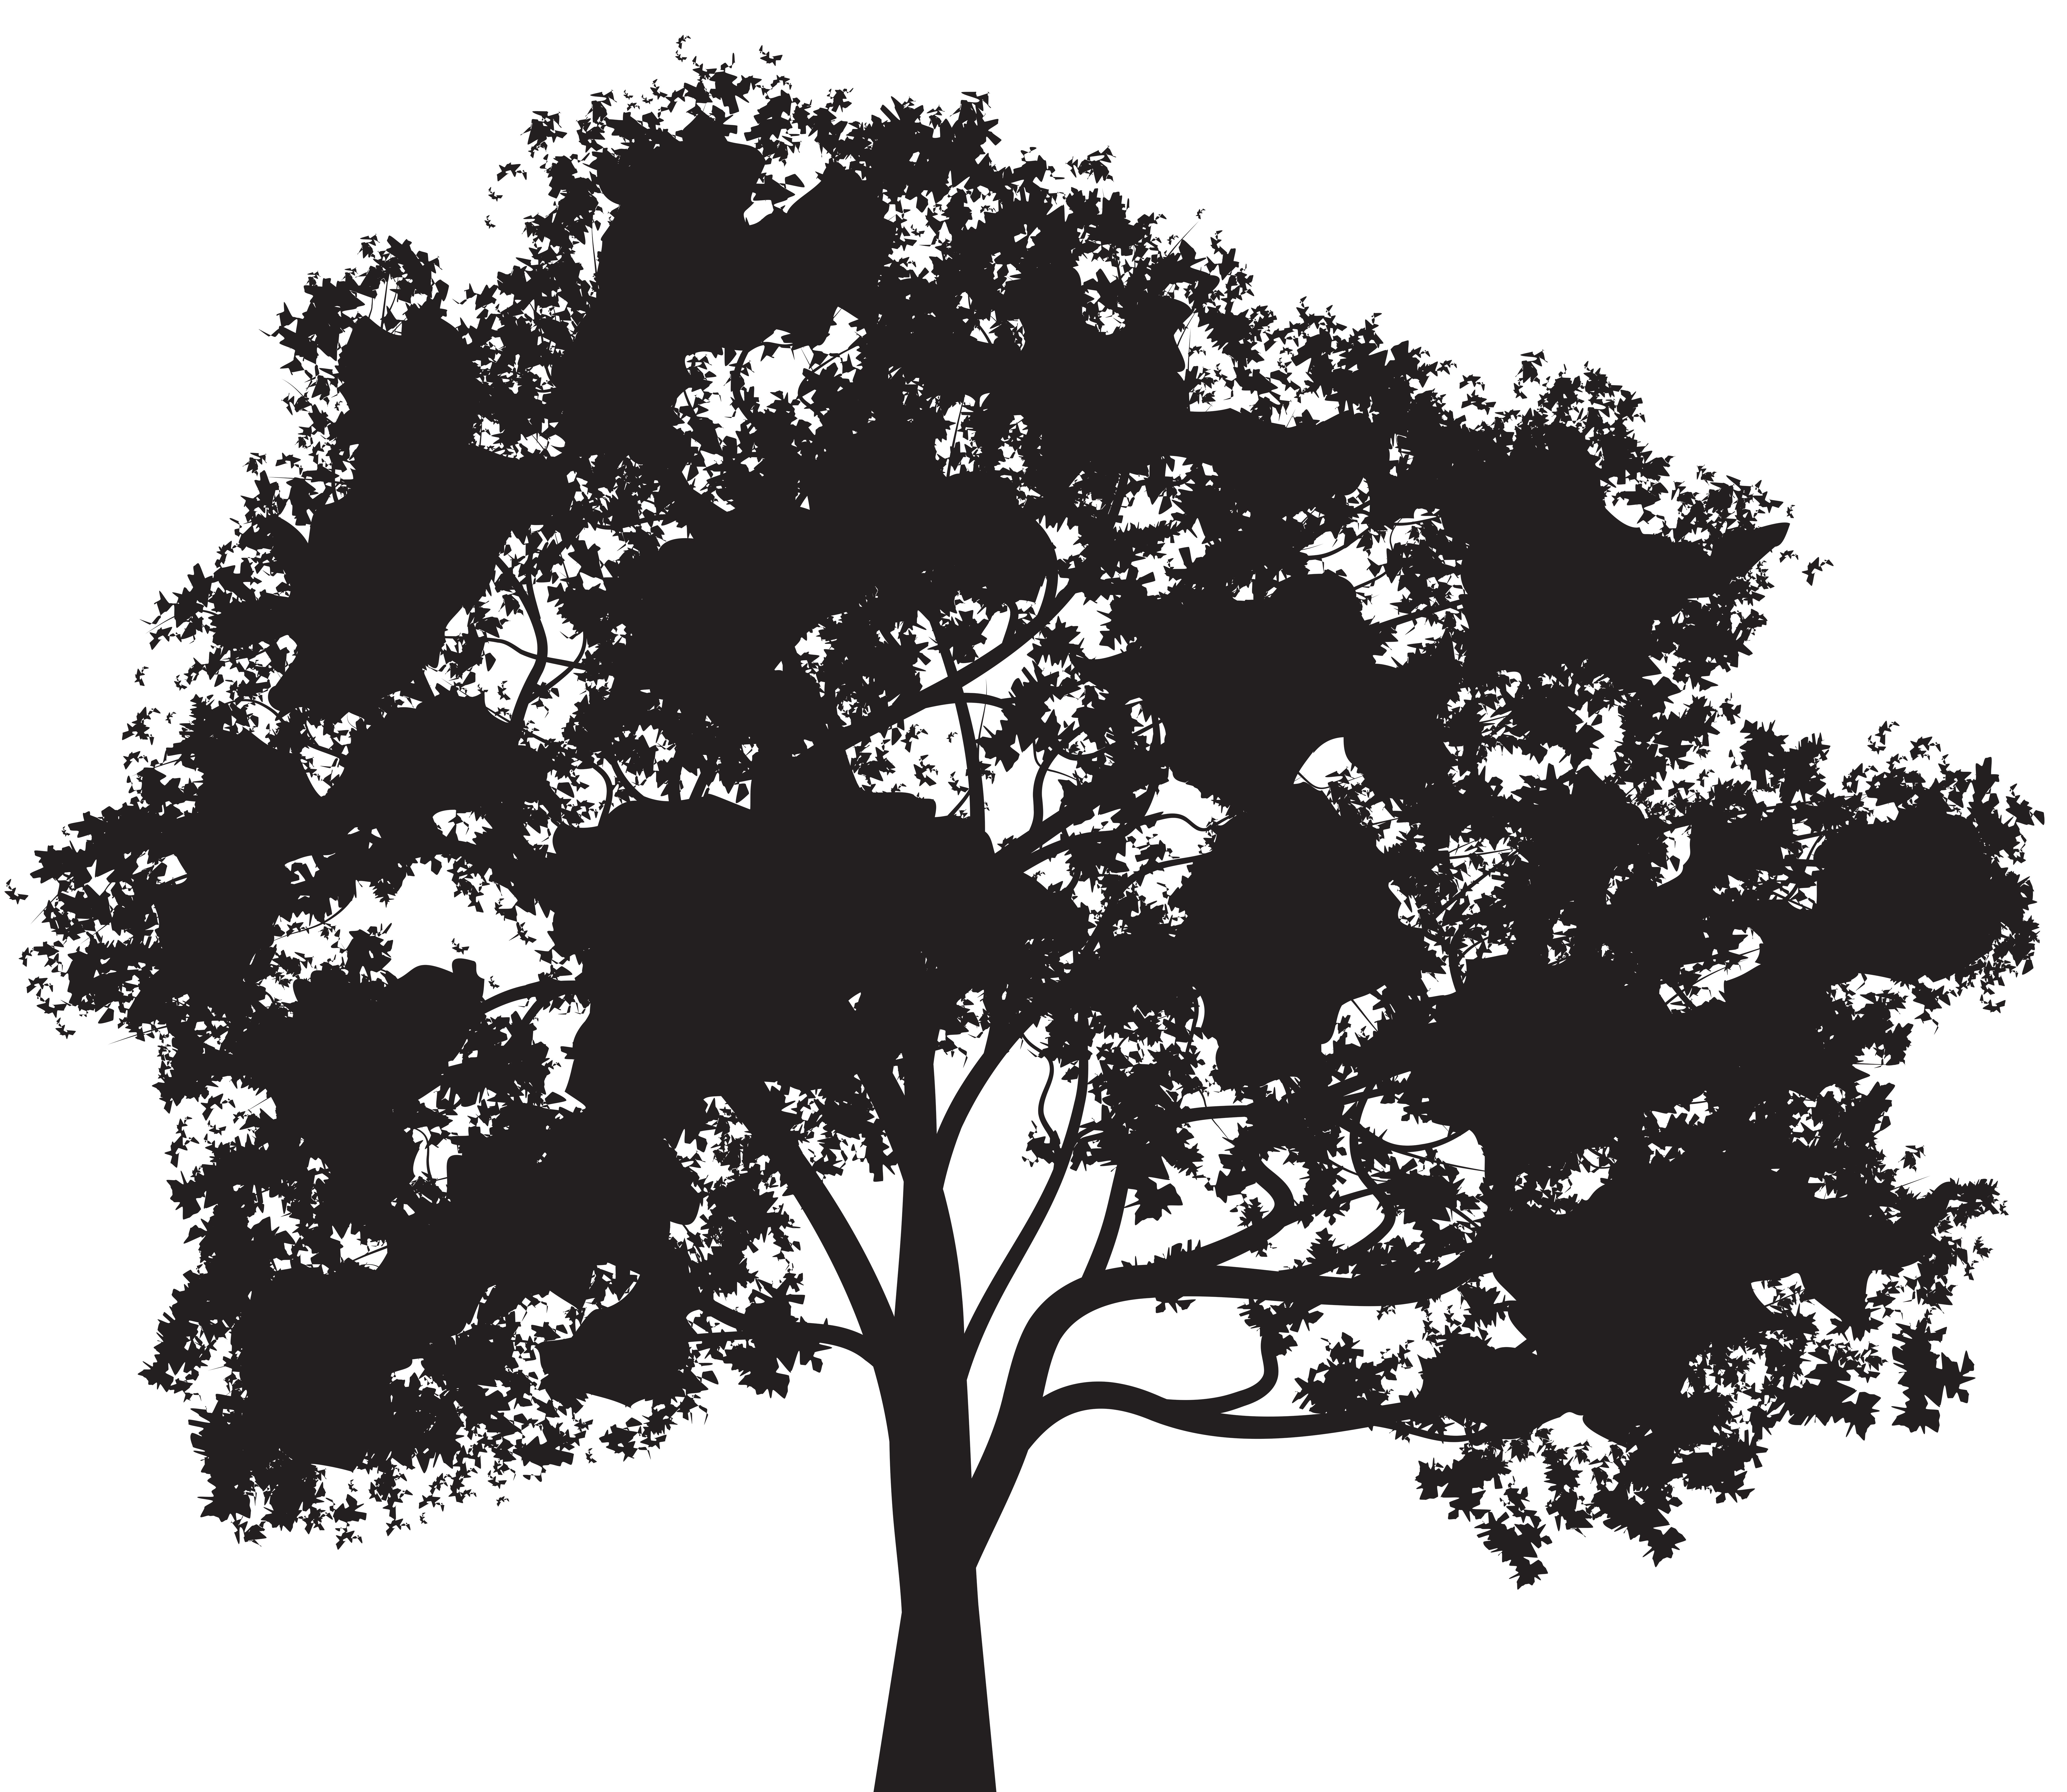 Tree png silhouette. Clip art image gallery